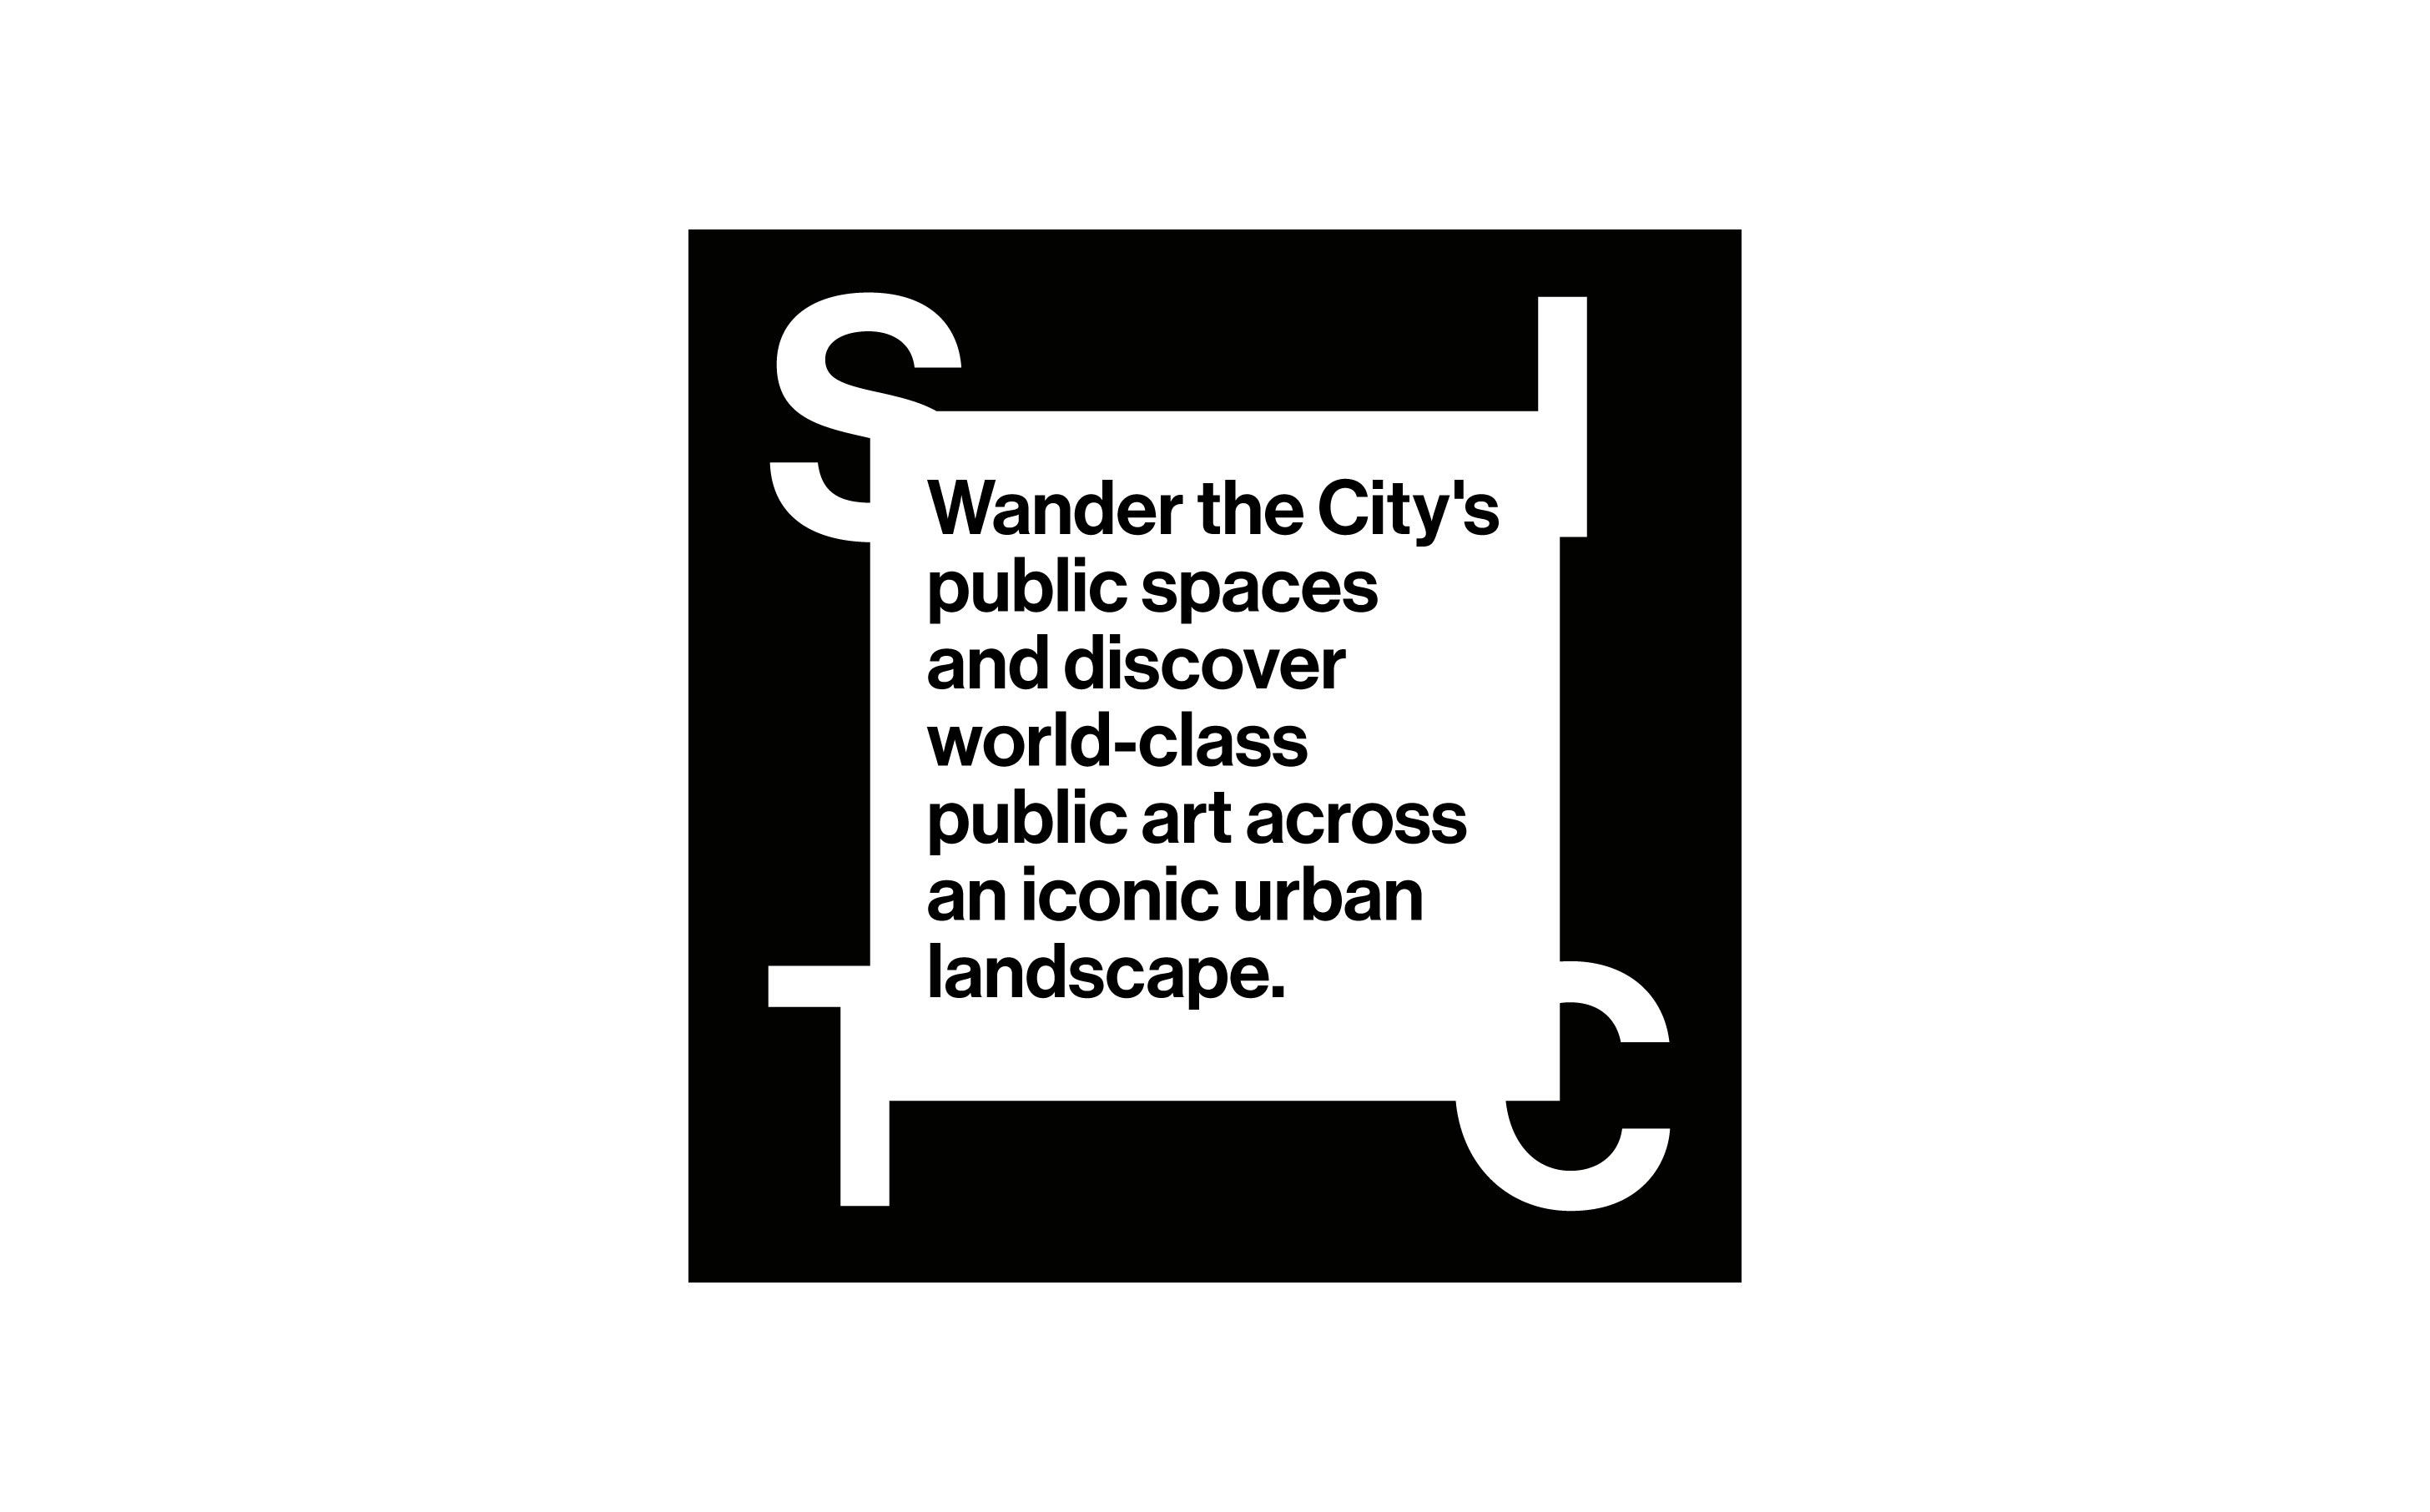 Sculpture-in-the-city-logo-system-2